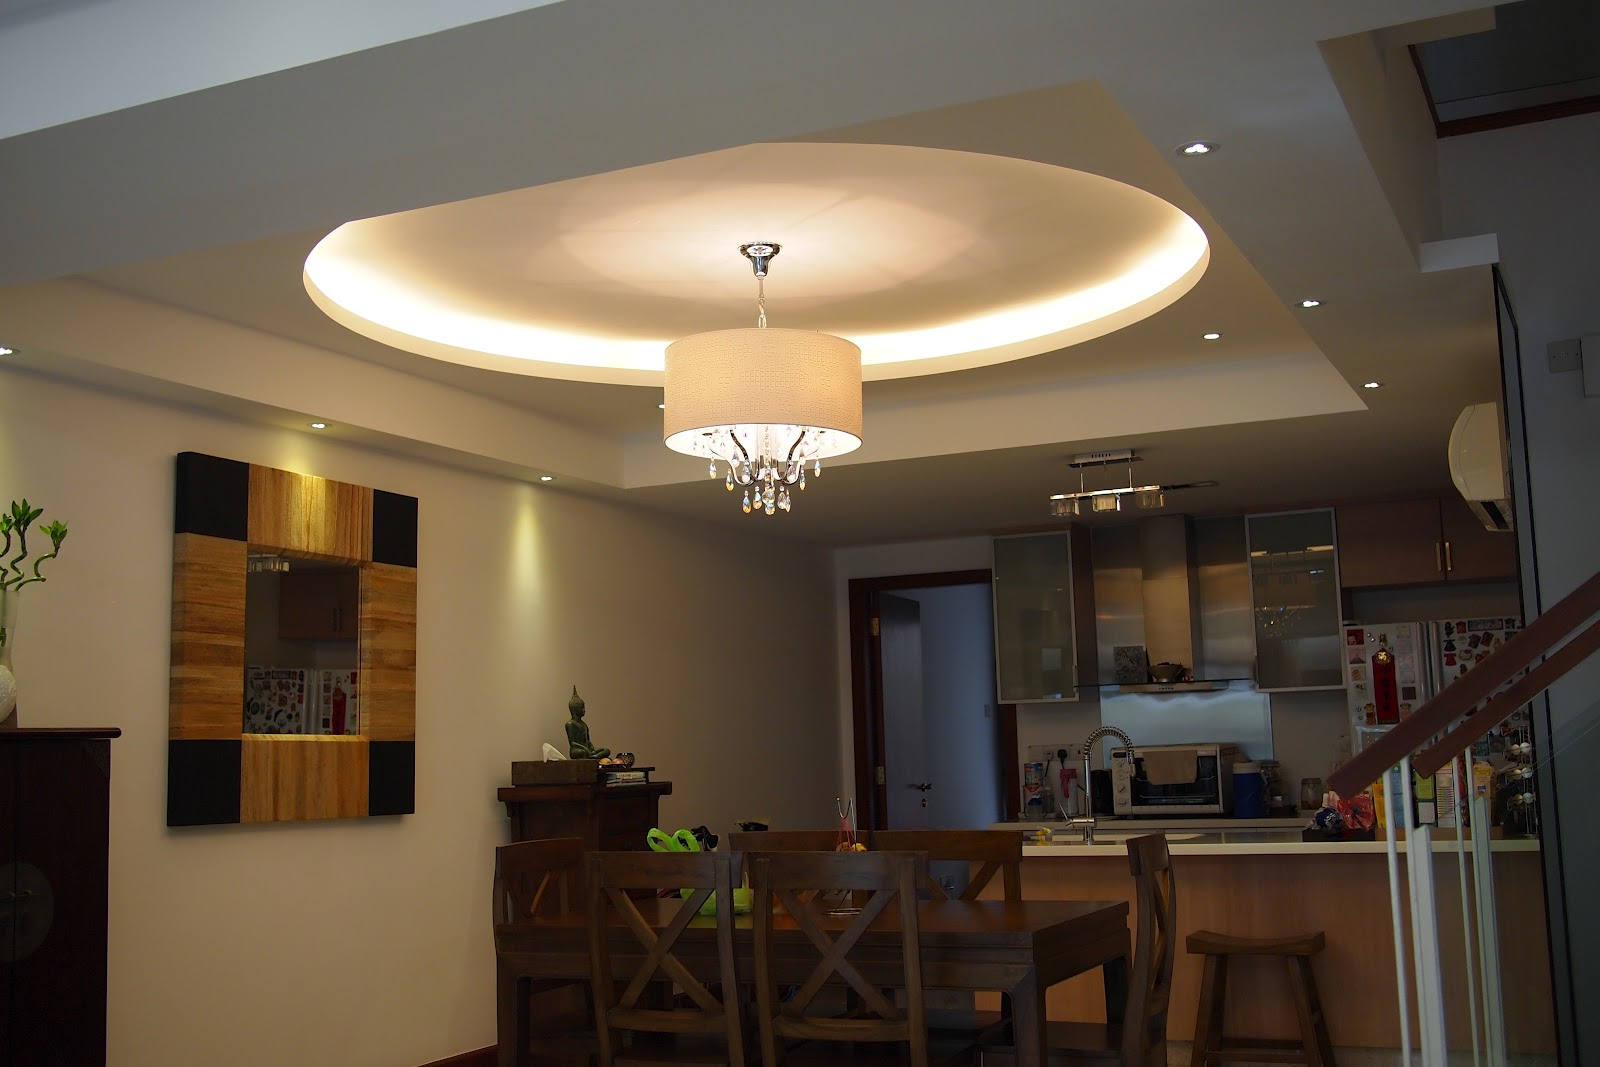 Round cove lighting at dining area with LED at perimeter title=